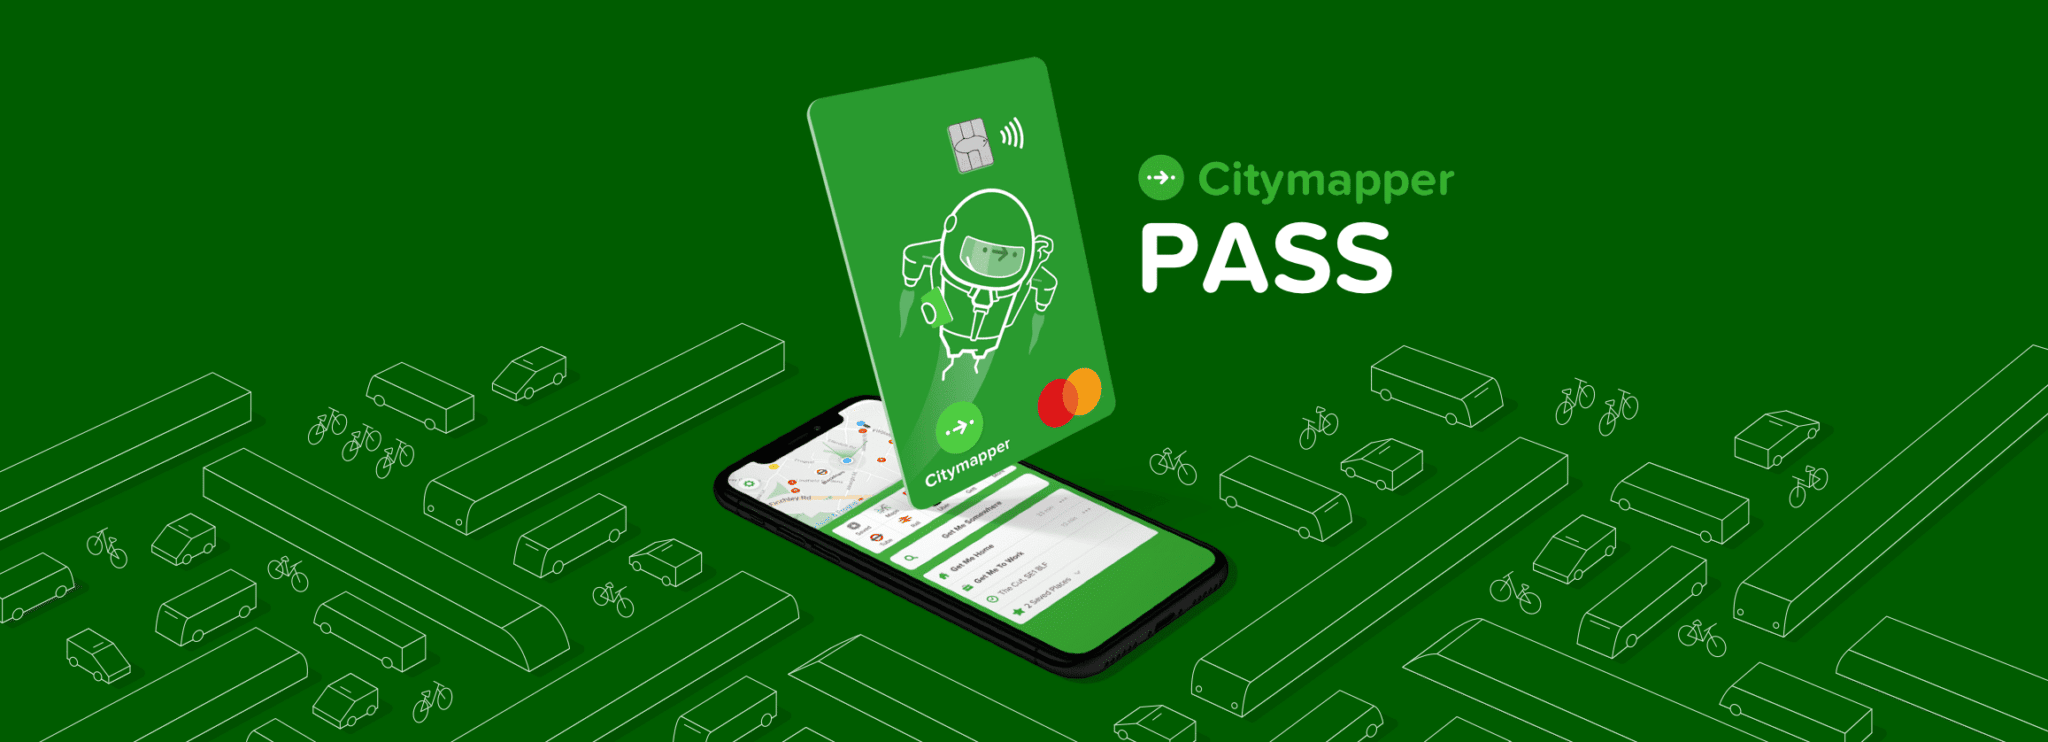 Présentation carte de transport Citymapper